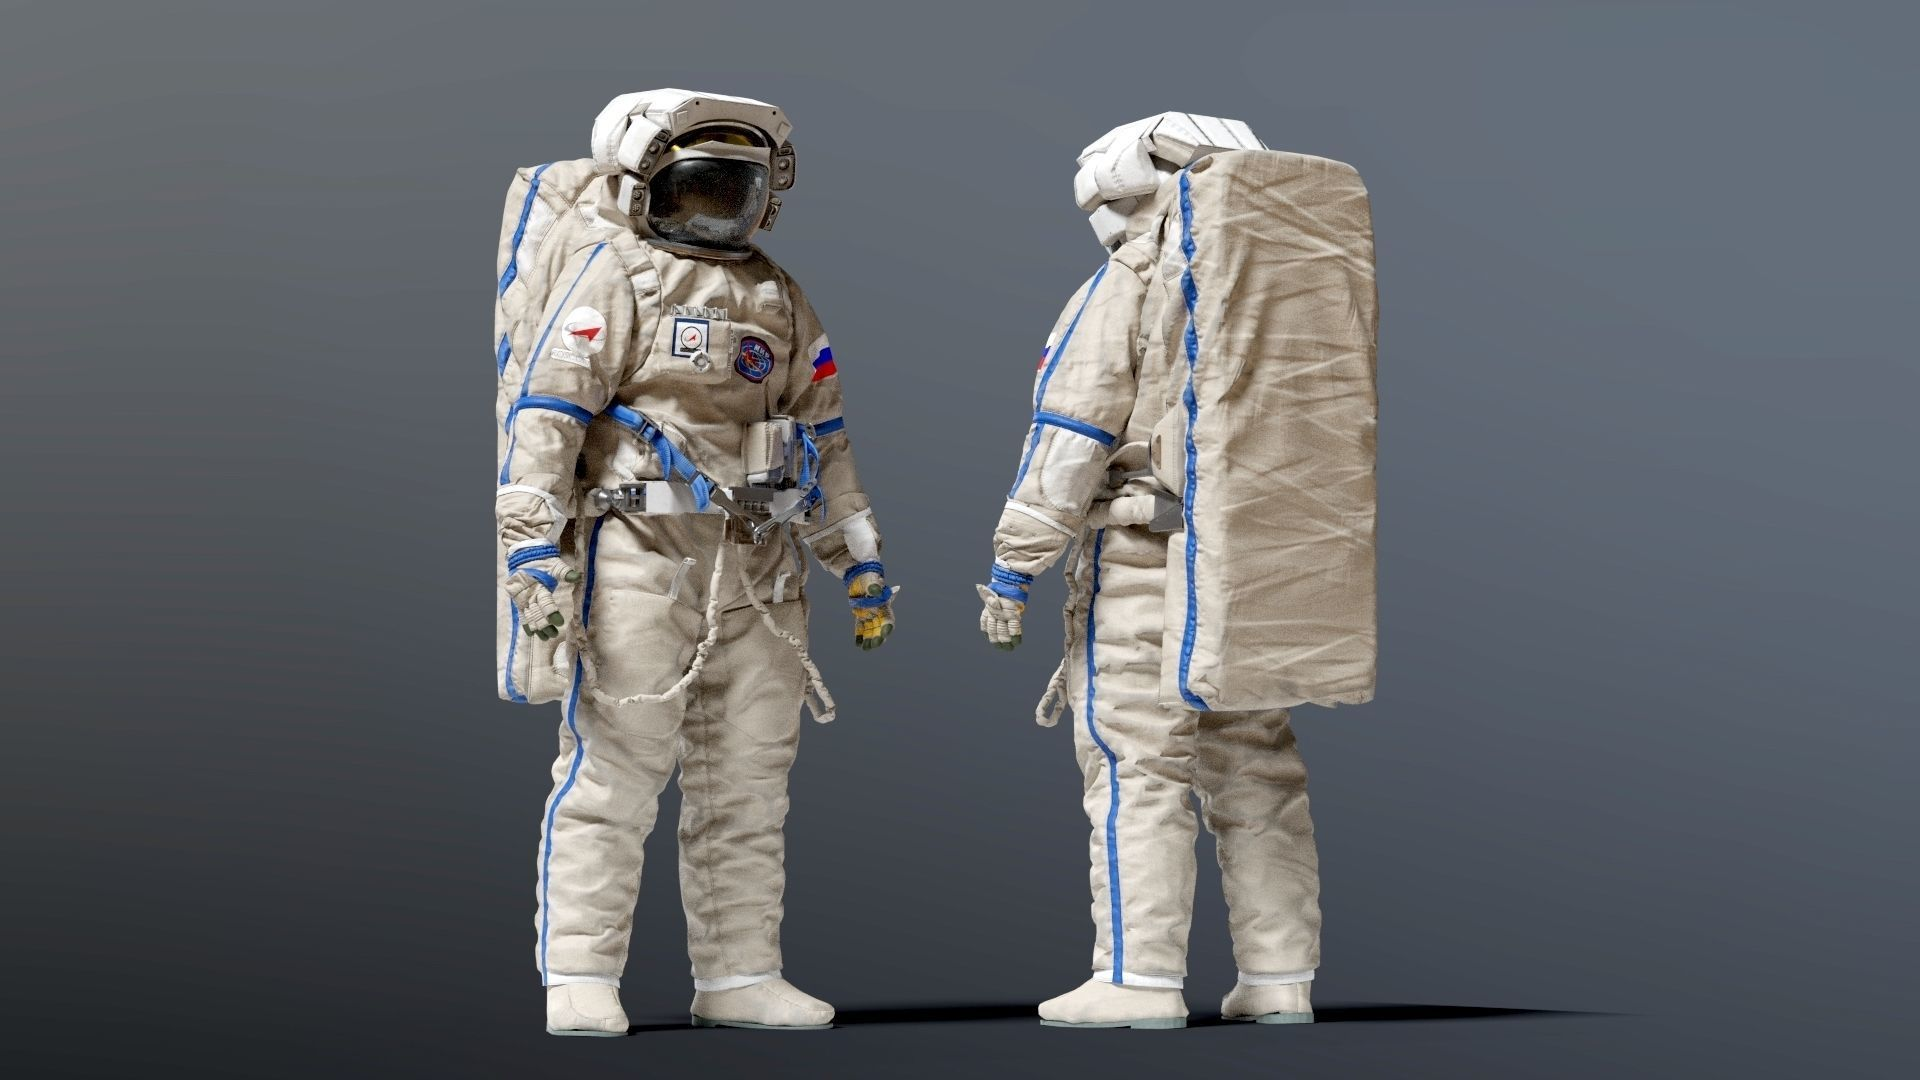 SPACESUIT Russian Orlan